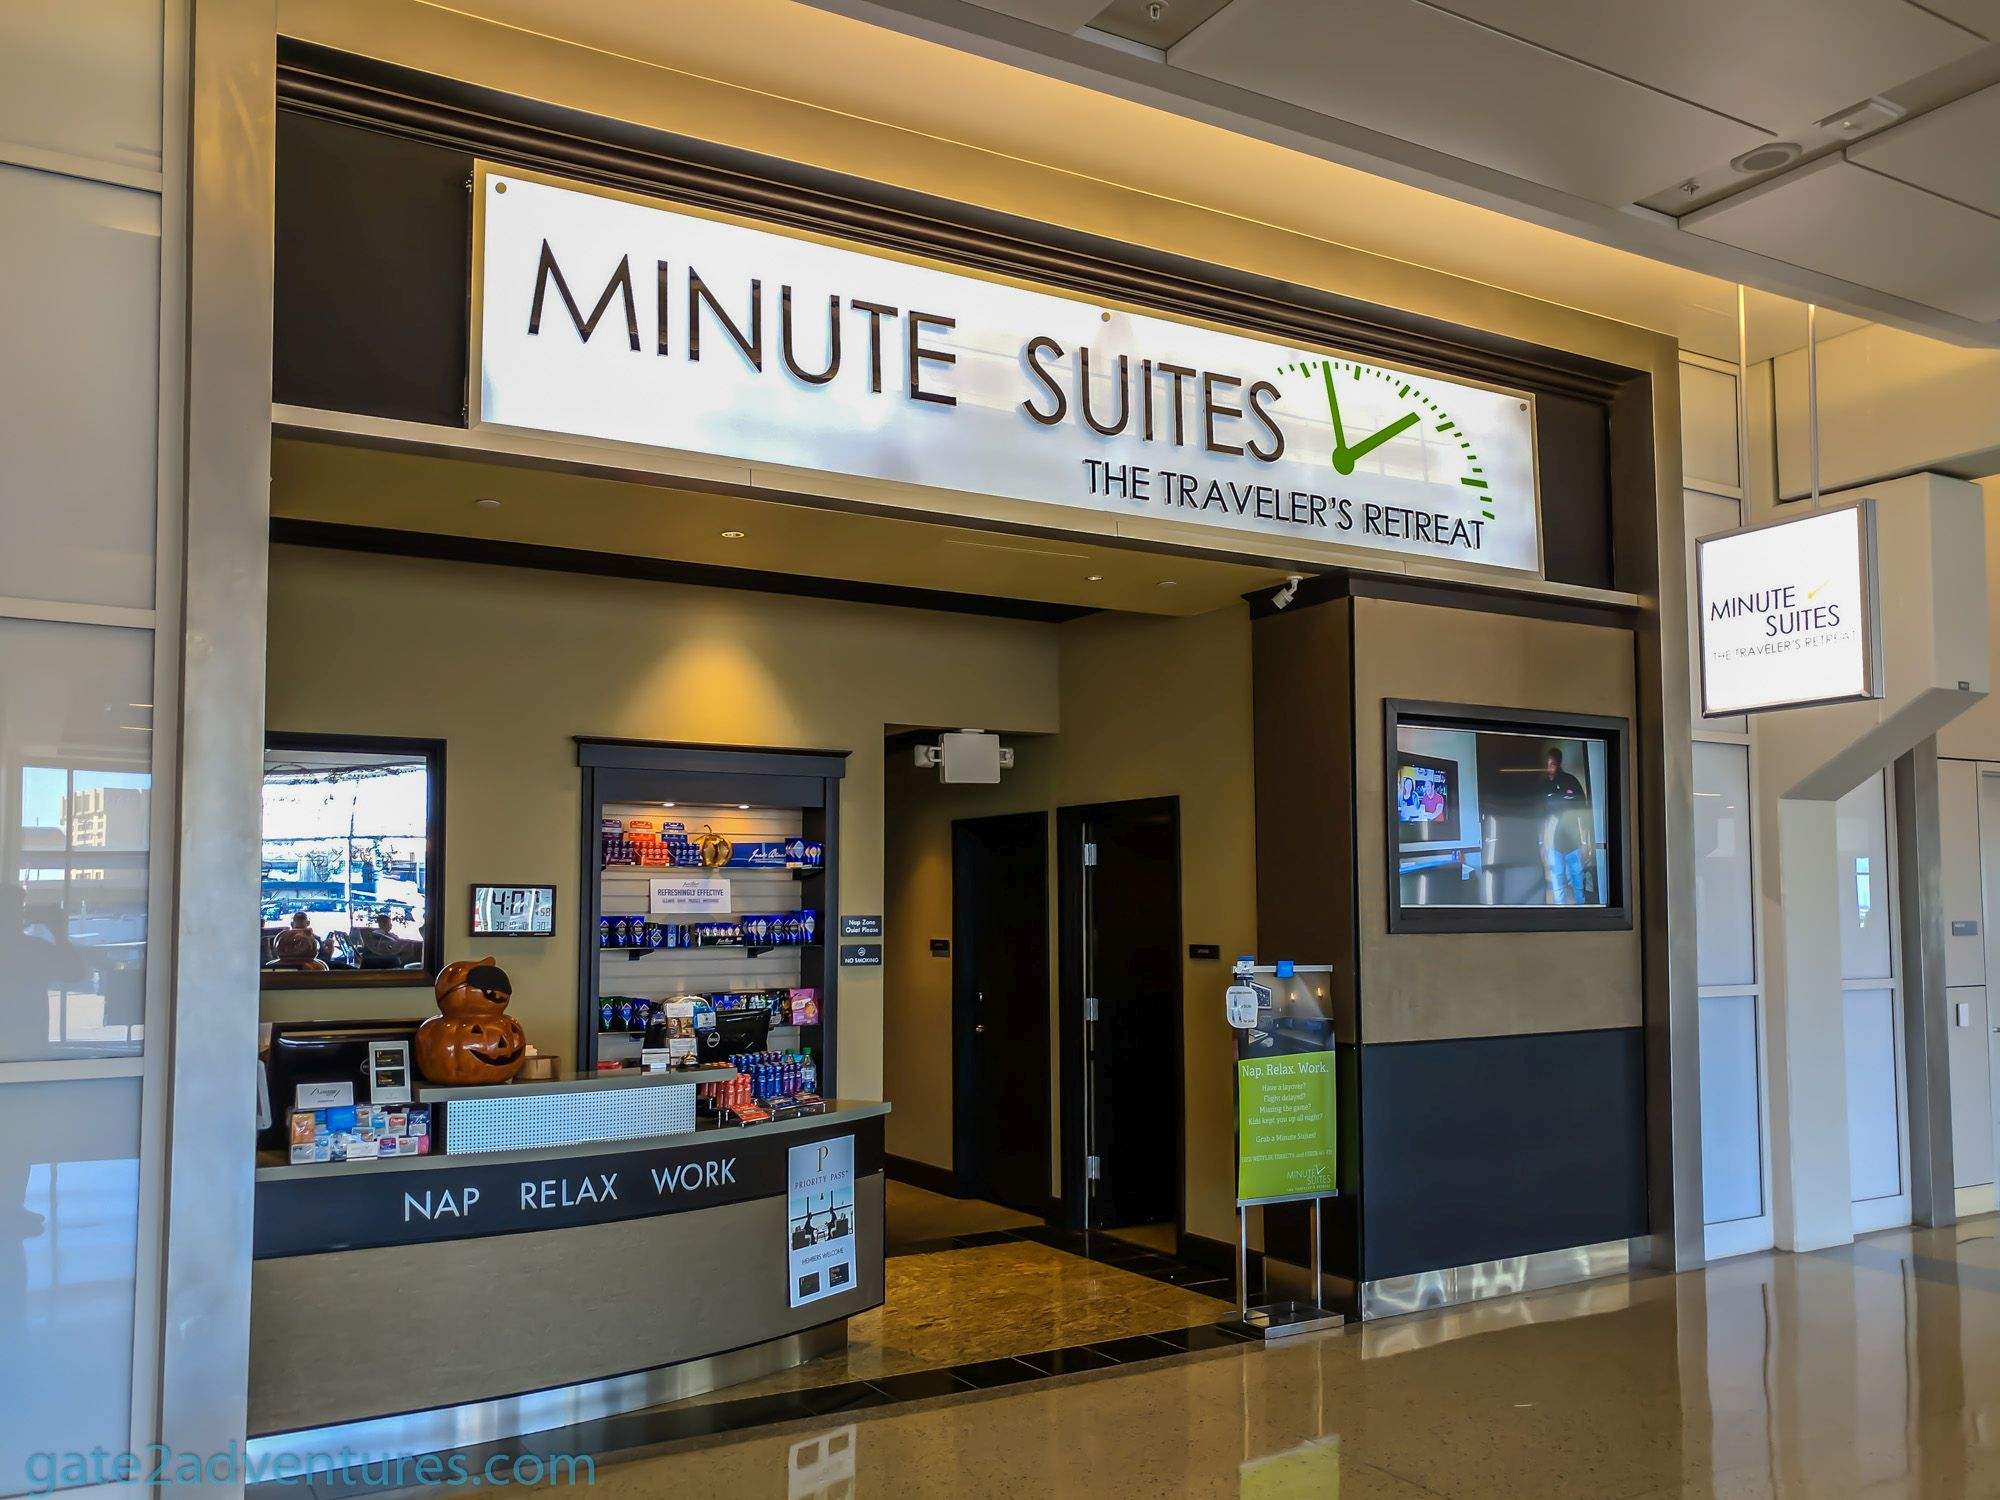 Minute Suites at Dallas/Fort Worth (DFW) Terminal A